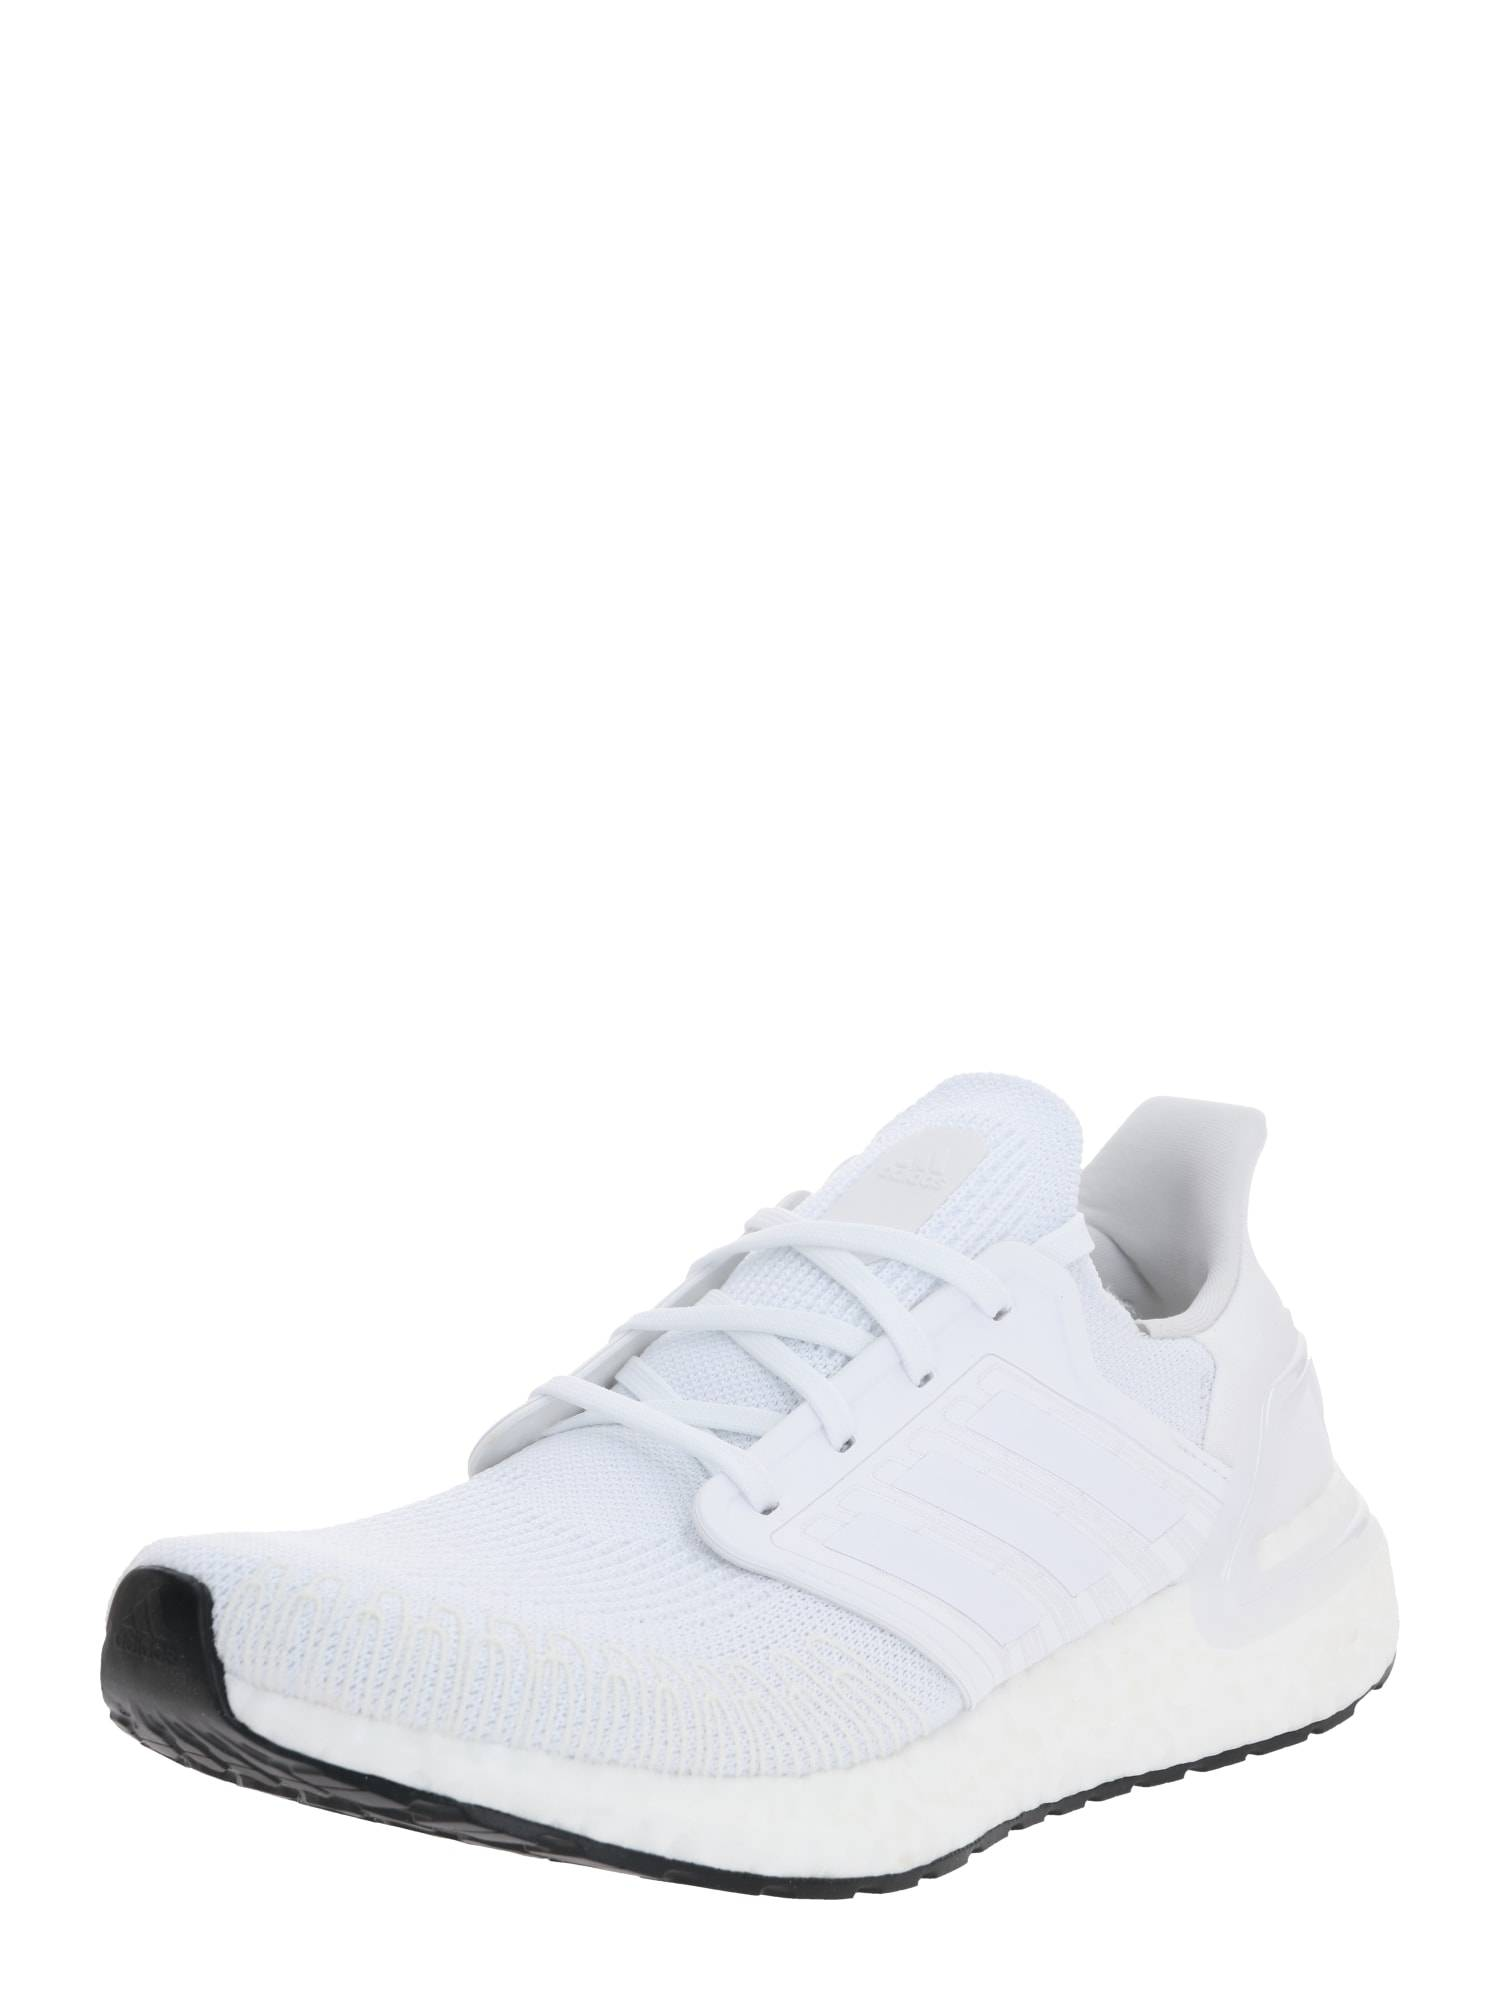 ADIDAS PERFORMANCE Chaussure de course 'Ultraboost 20'  - Blanc - Taille: 46.5-47 - male